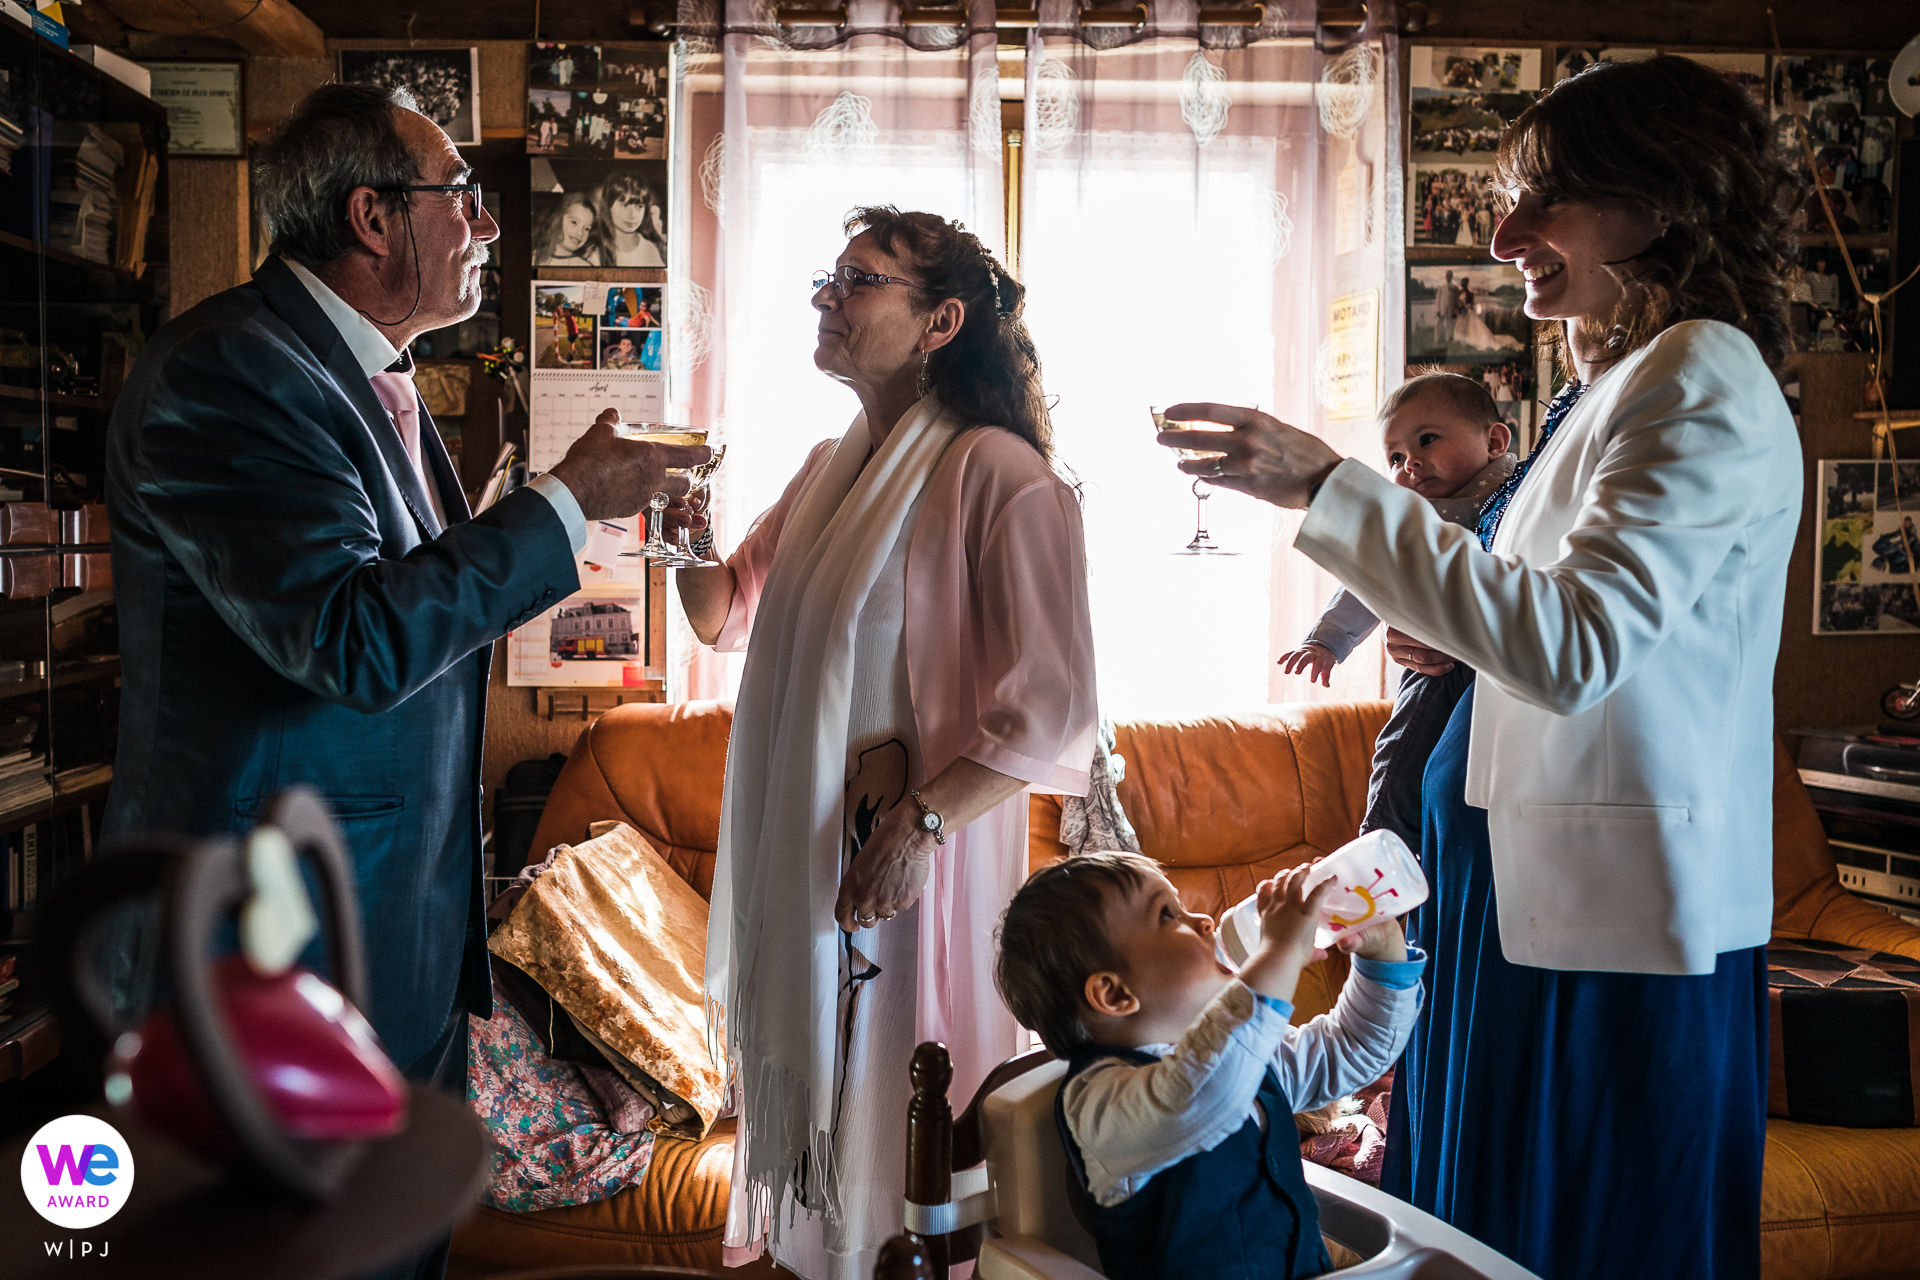 Central France Wedding Reception Image from Home | The couple toasts one another